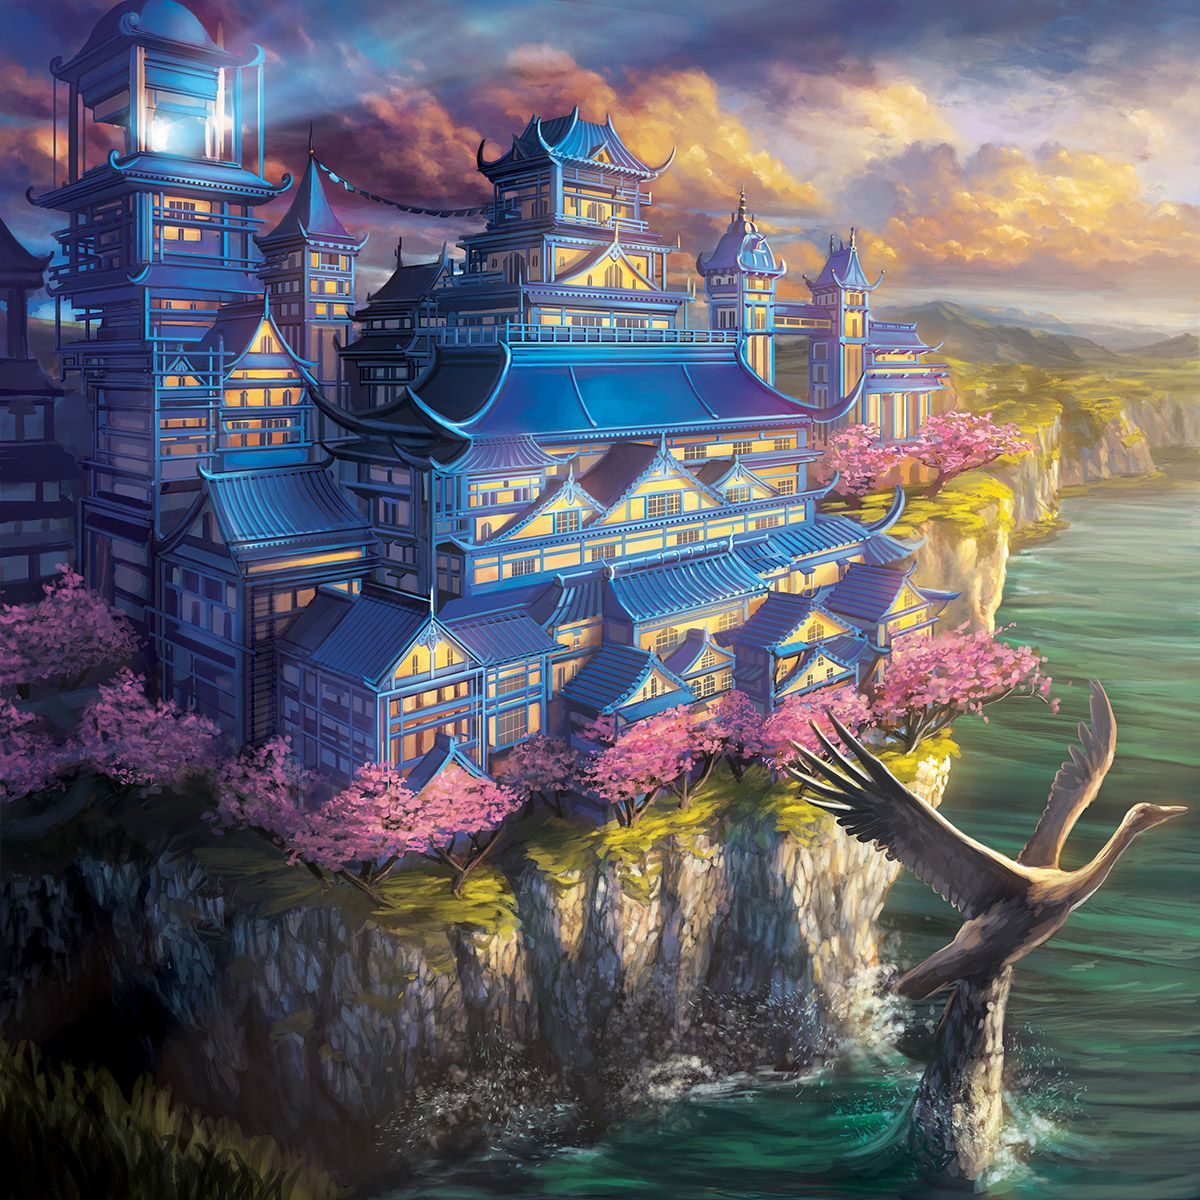 Esteemed Palace of the Crane by Alayna on DeviantArt